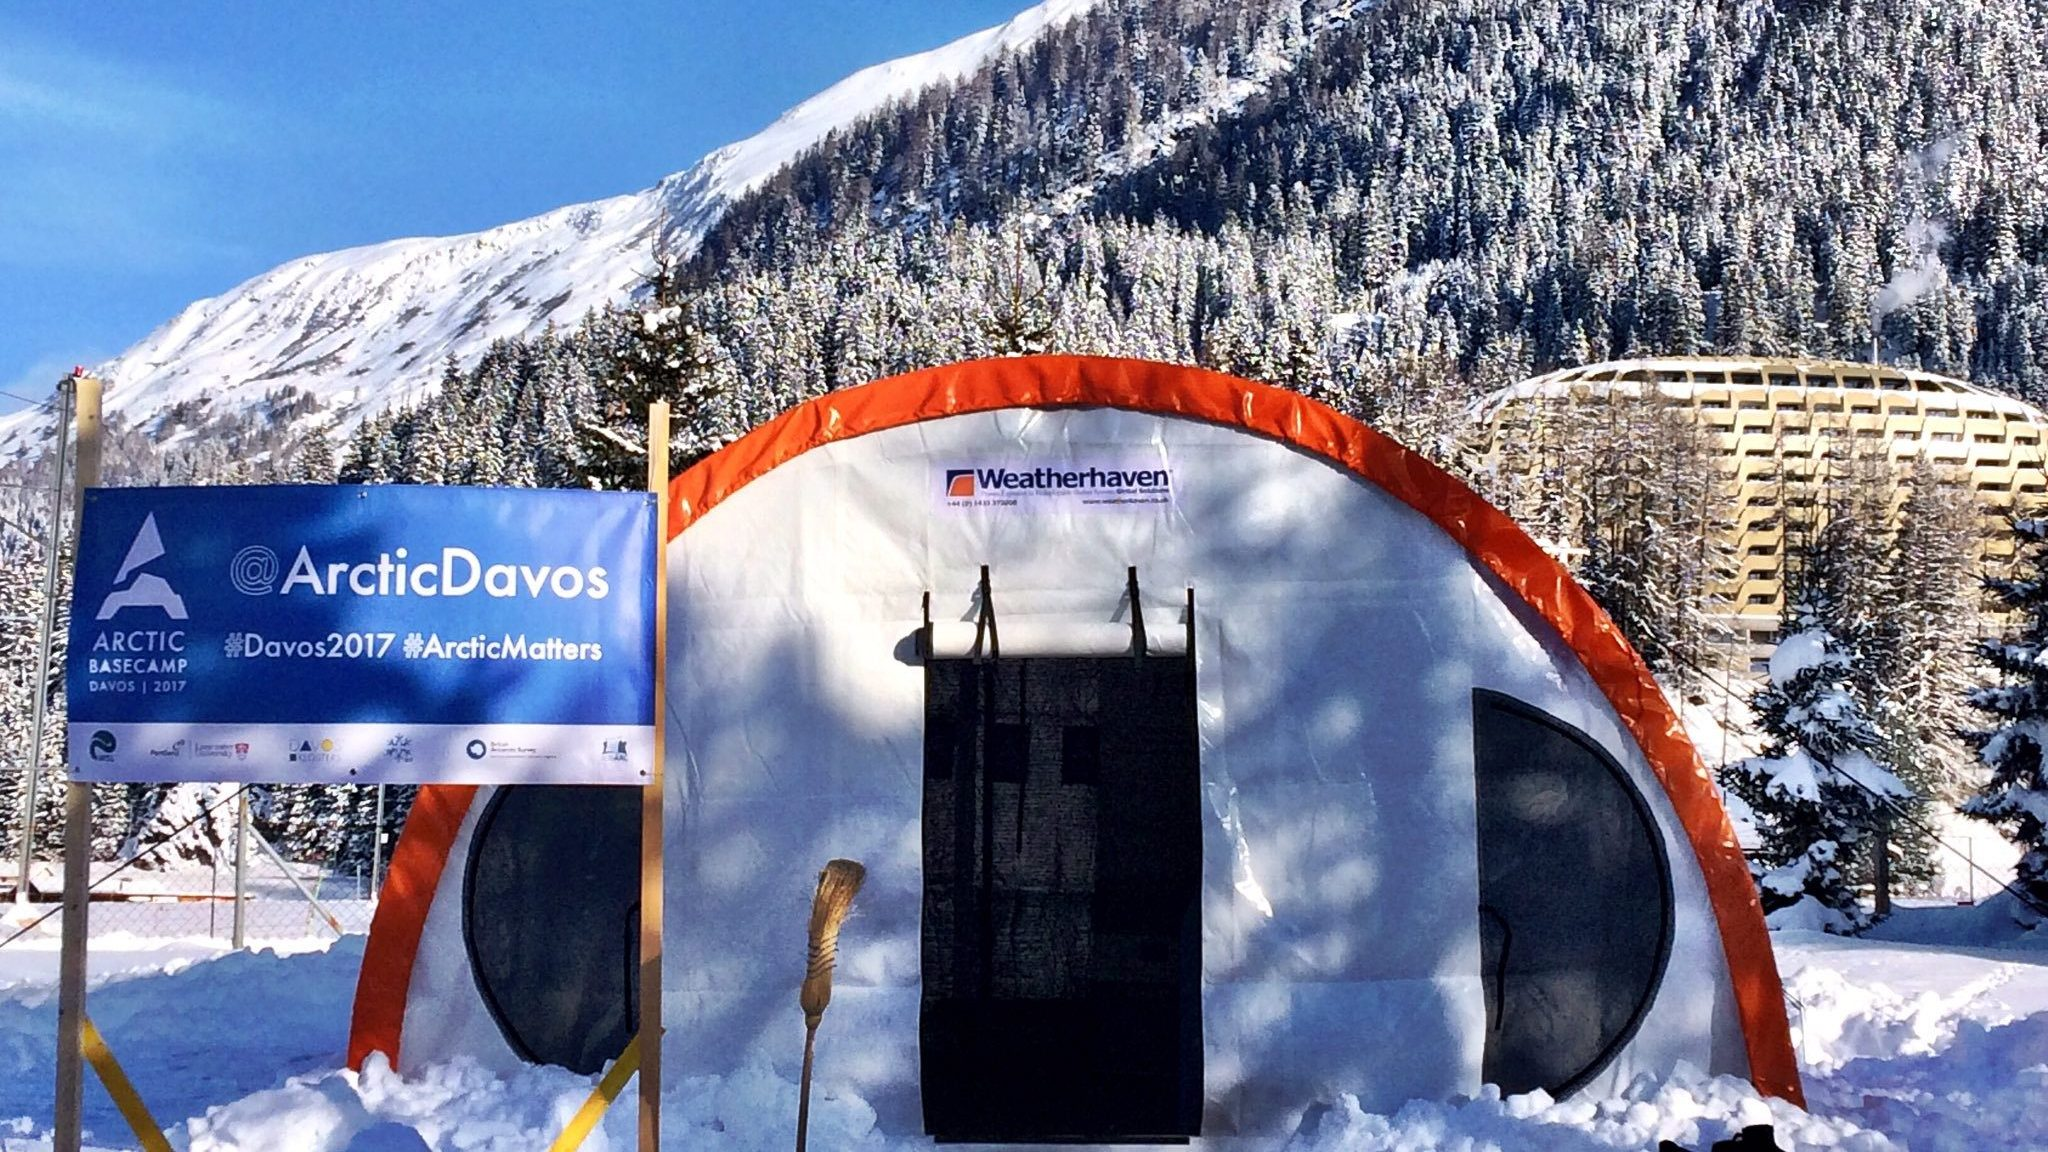 Series 4 Polar shelter at Davos